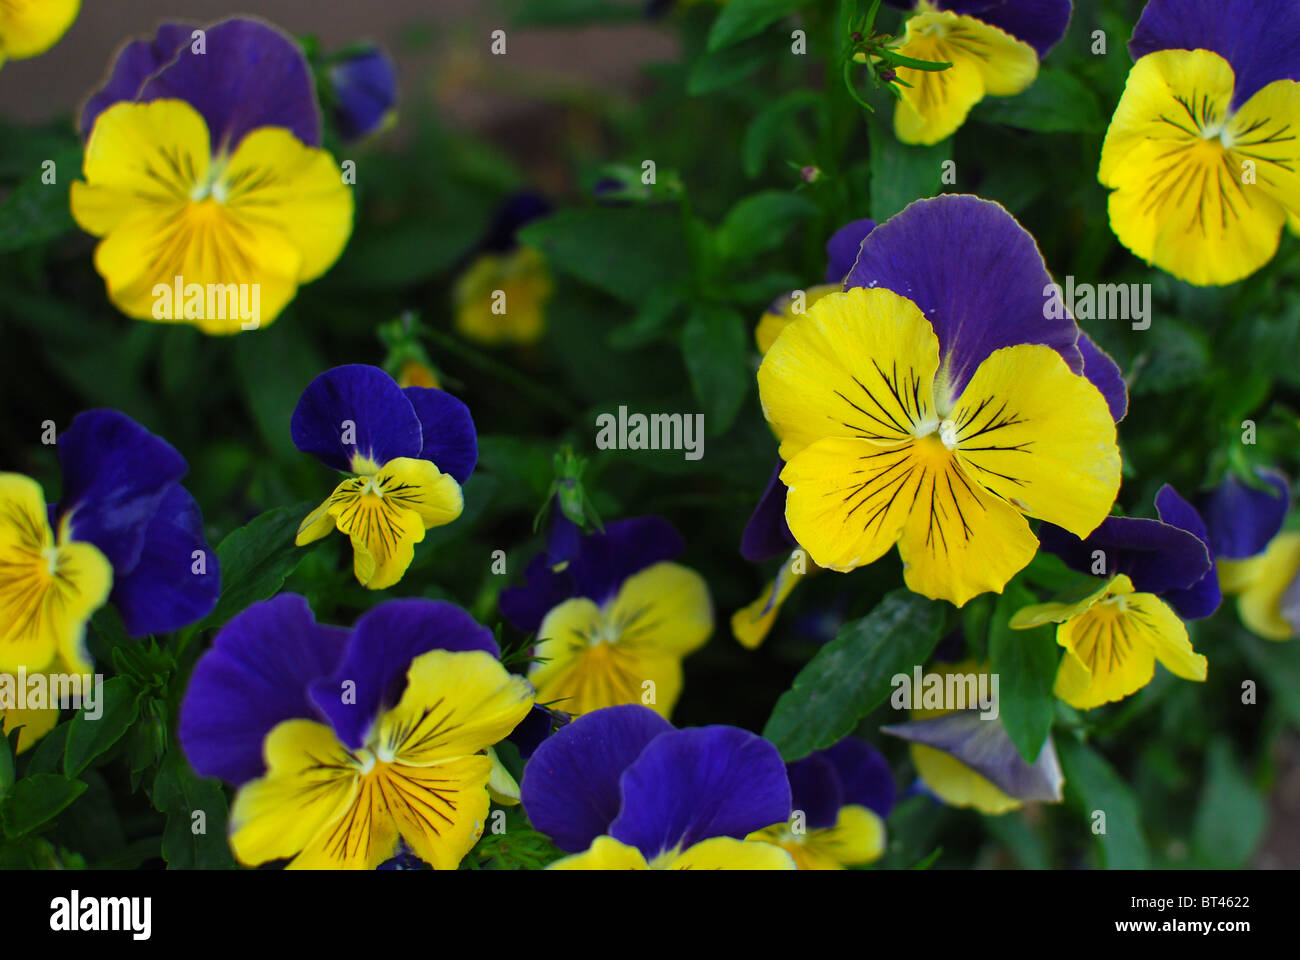 Colorful old-fashioned pansies for loving thoughts - Stock Image